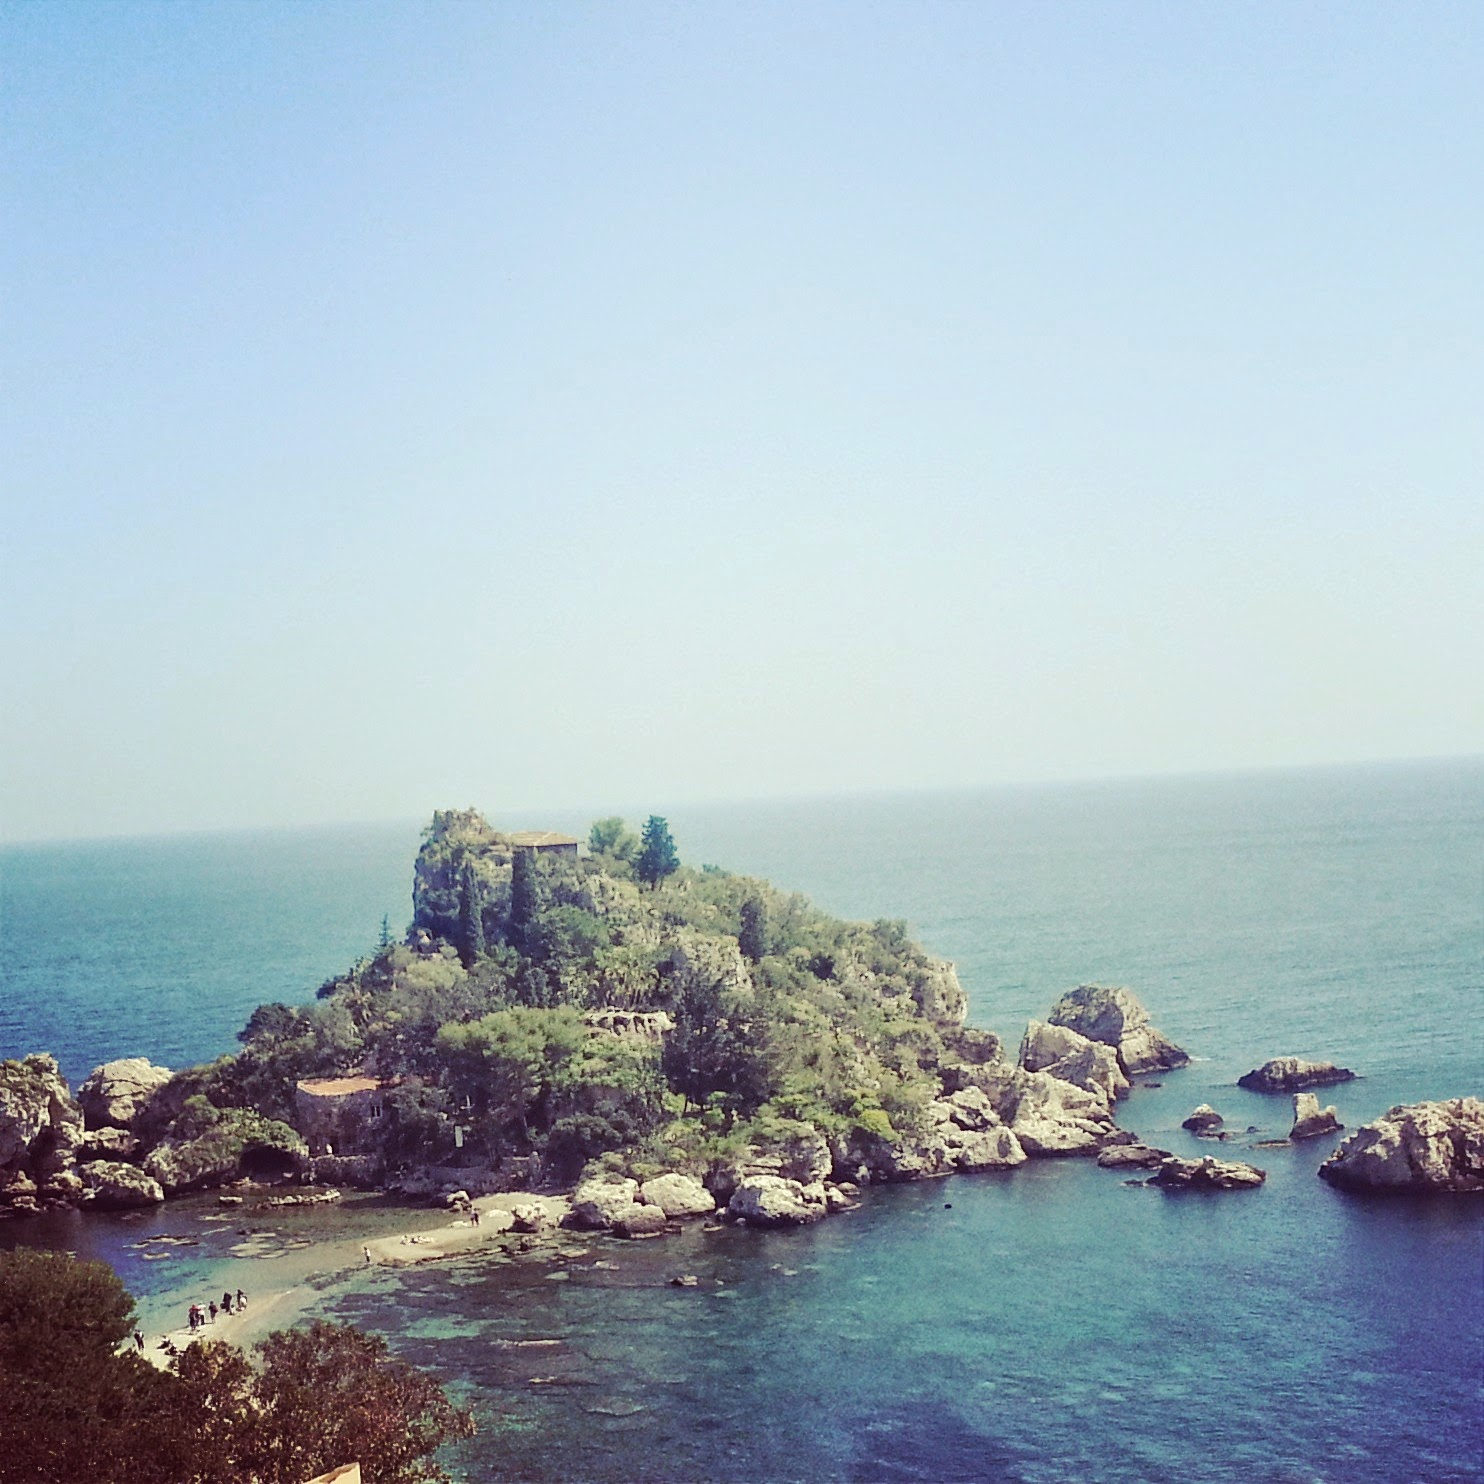 Isola Bella in Taormina | Back in Sicily on afeathery*nest  |  http://afeatherynest.blogspot.com